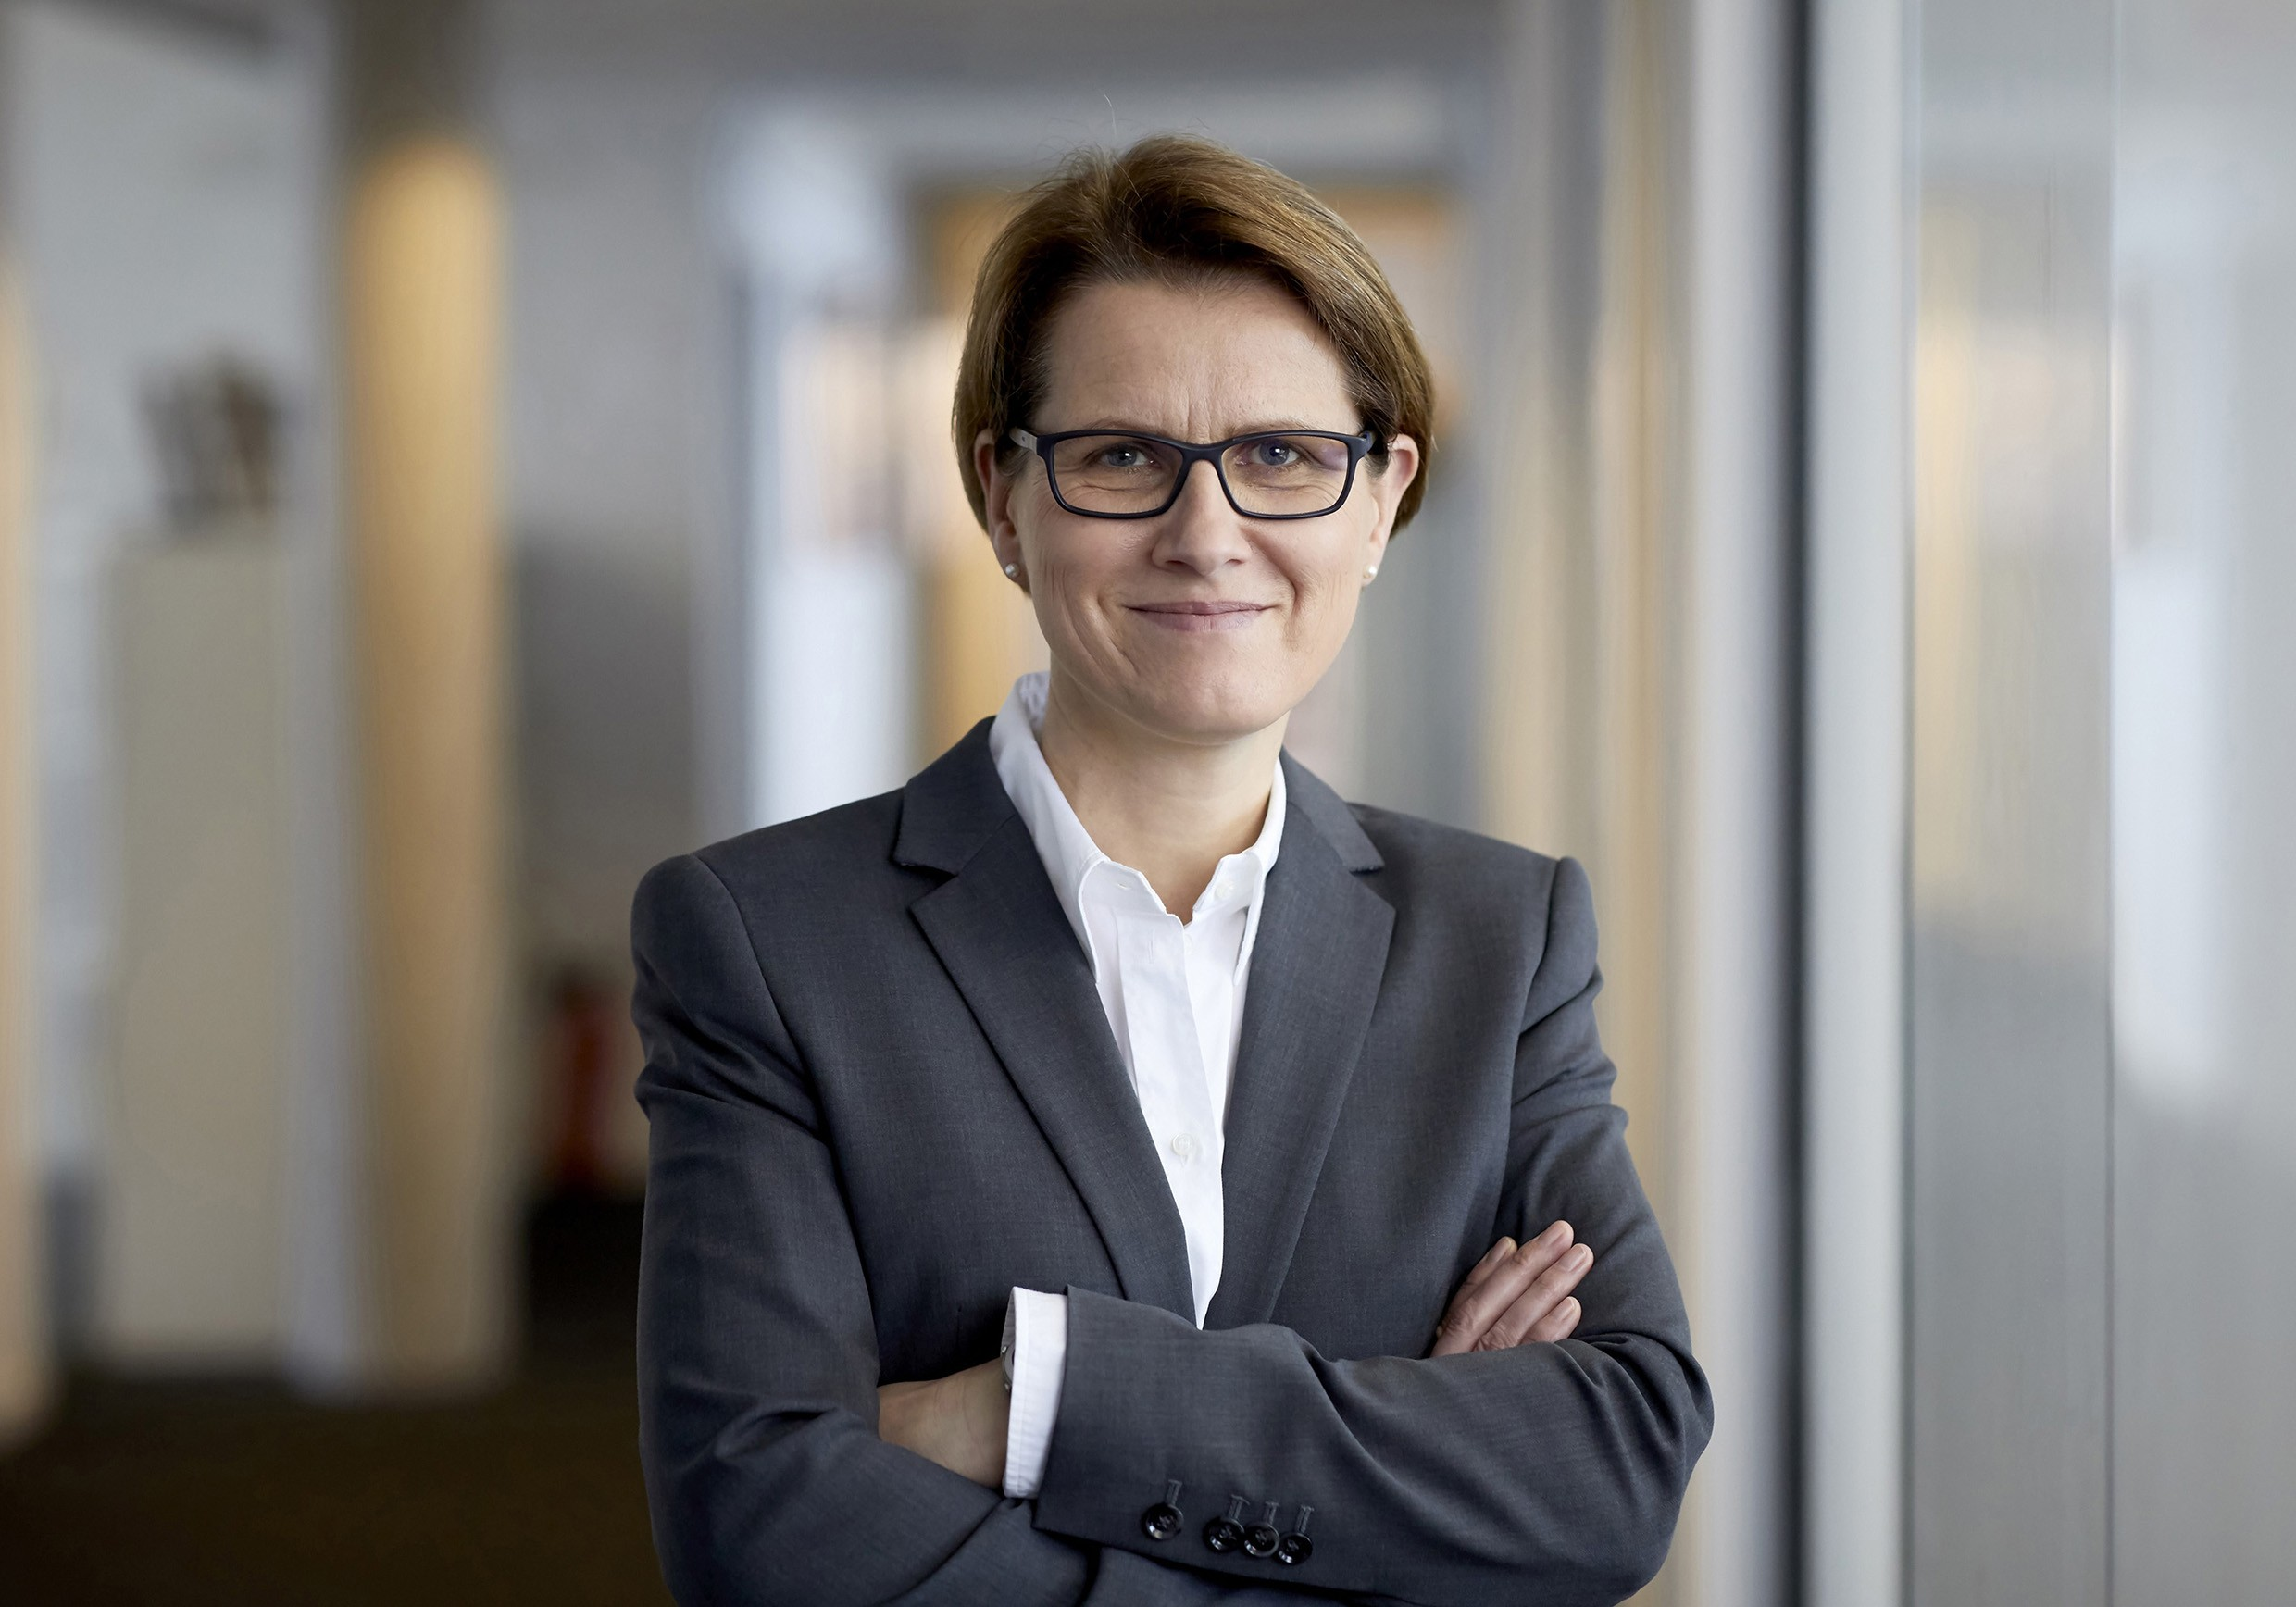 Solveig Hillebrecht has been making use of her expertise as part of the management team of ATP Frankfurt since January 2019.<br><span class='image_copyright'>ATP/Rauschmeir</span><br>